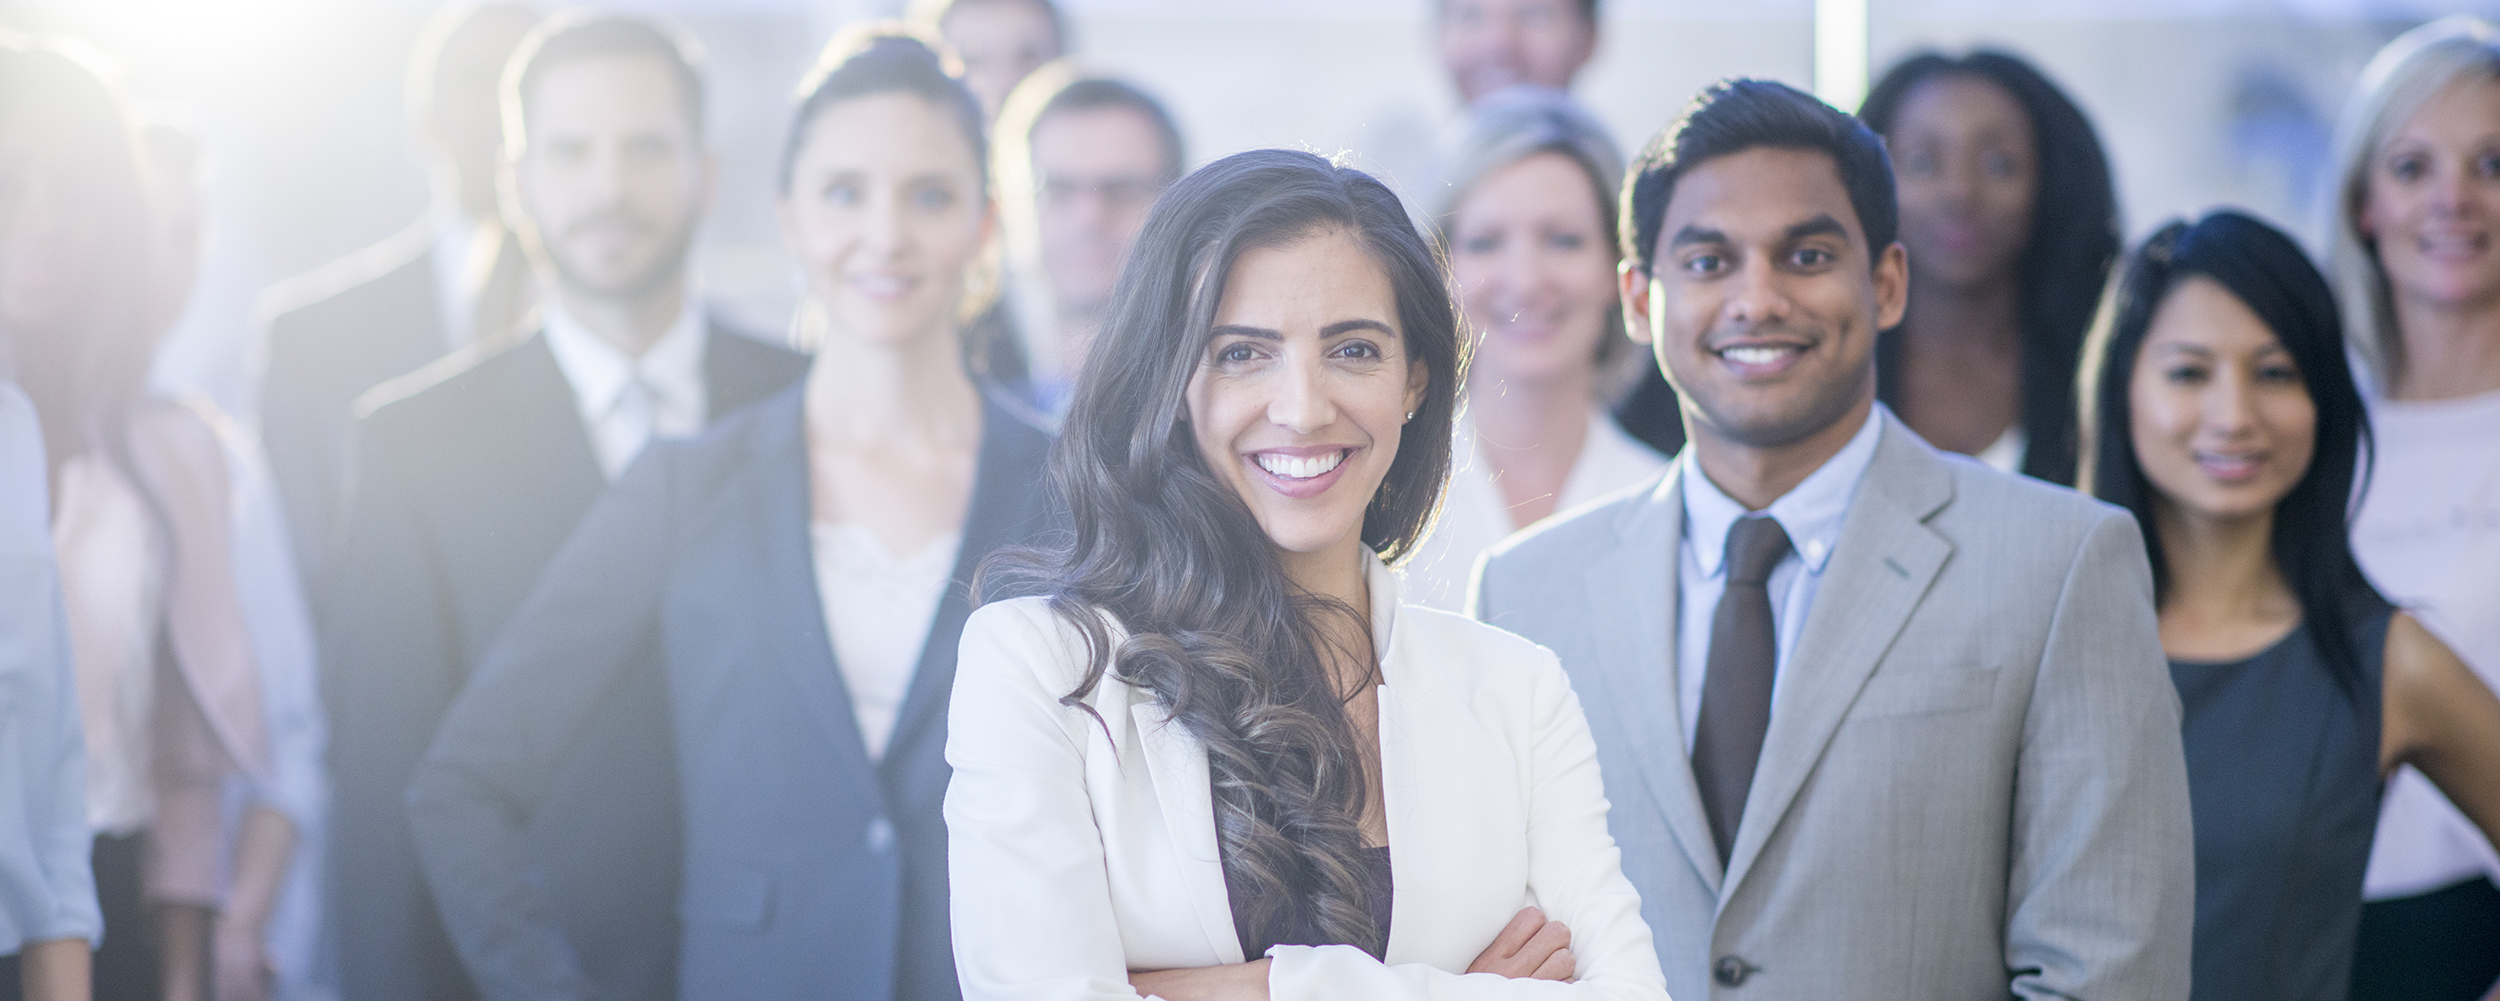 Happy Group Of Office Workers - Stock image